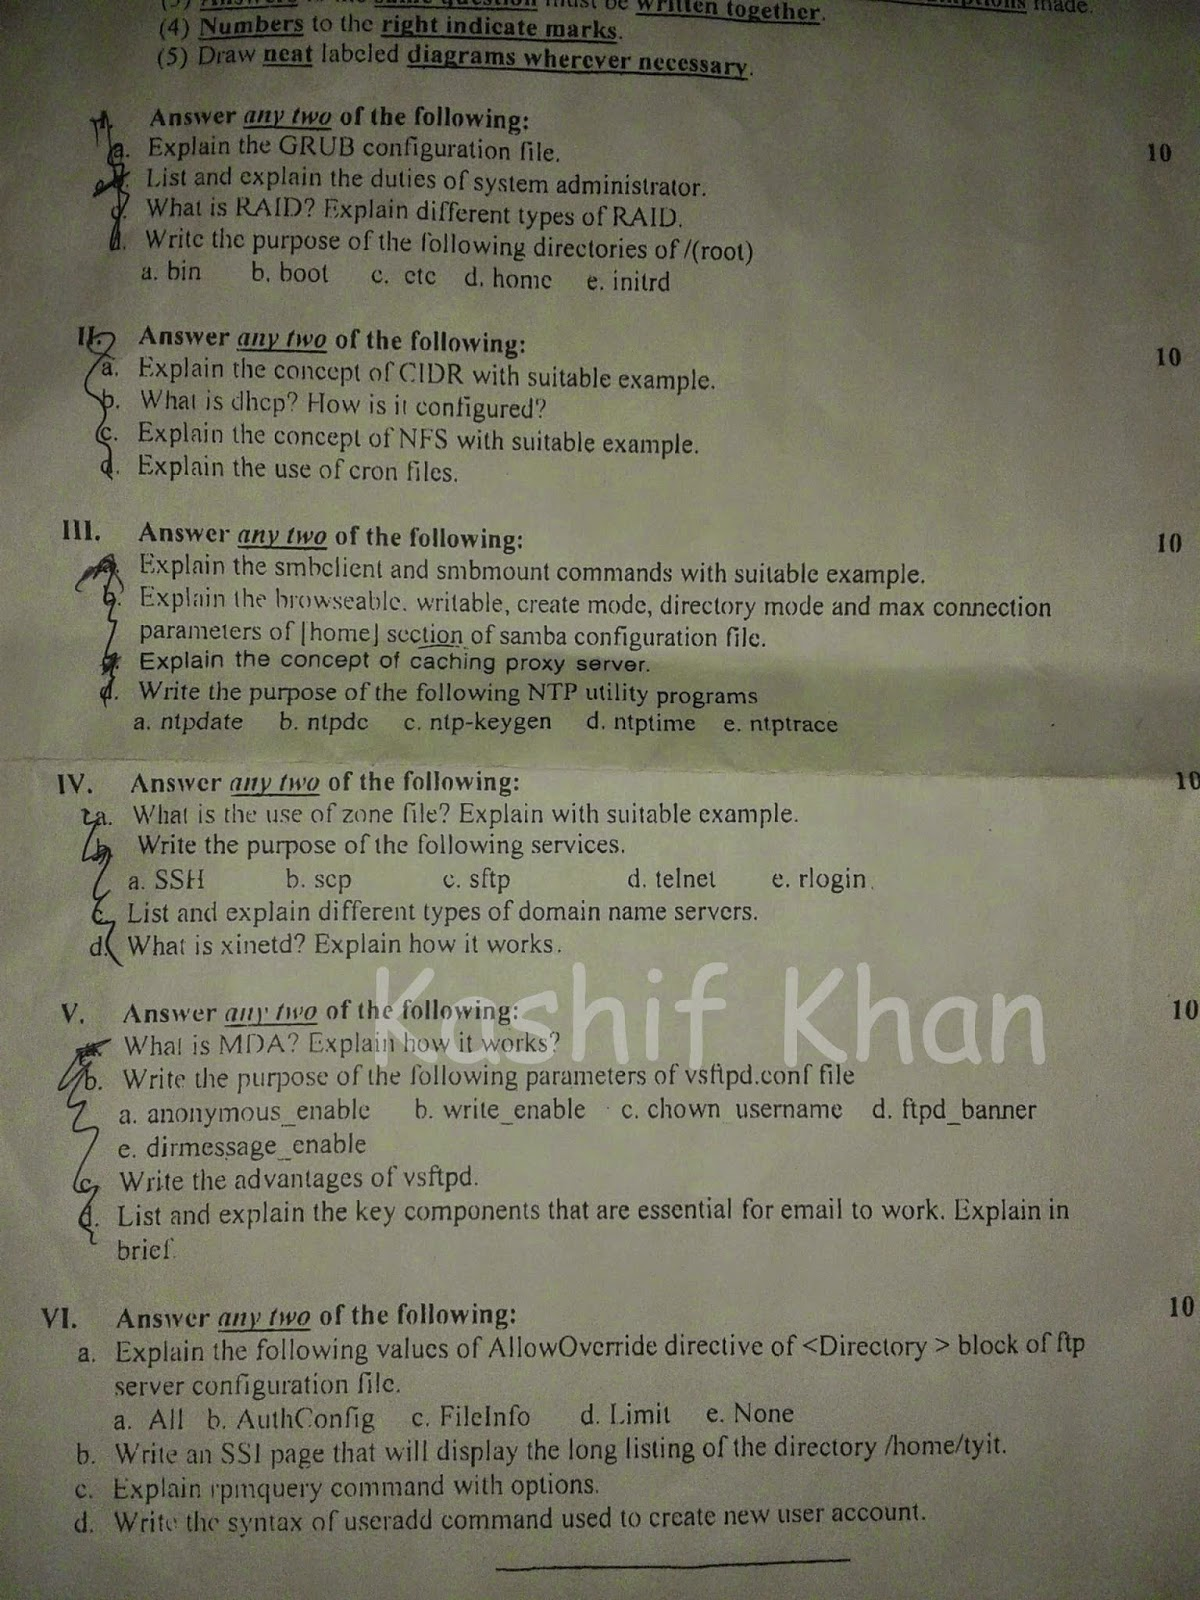 Mumbai university question papers tyit it sem 5 and 6 linuxs linuxs question paper 2013 malvernweather Choice Image